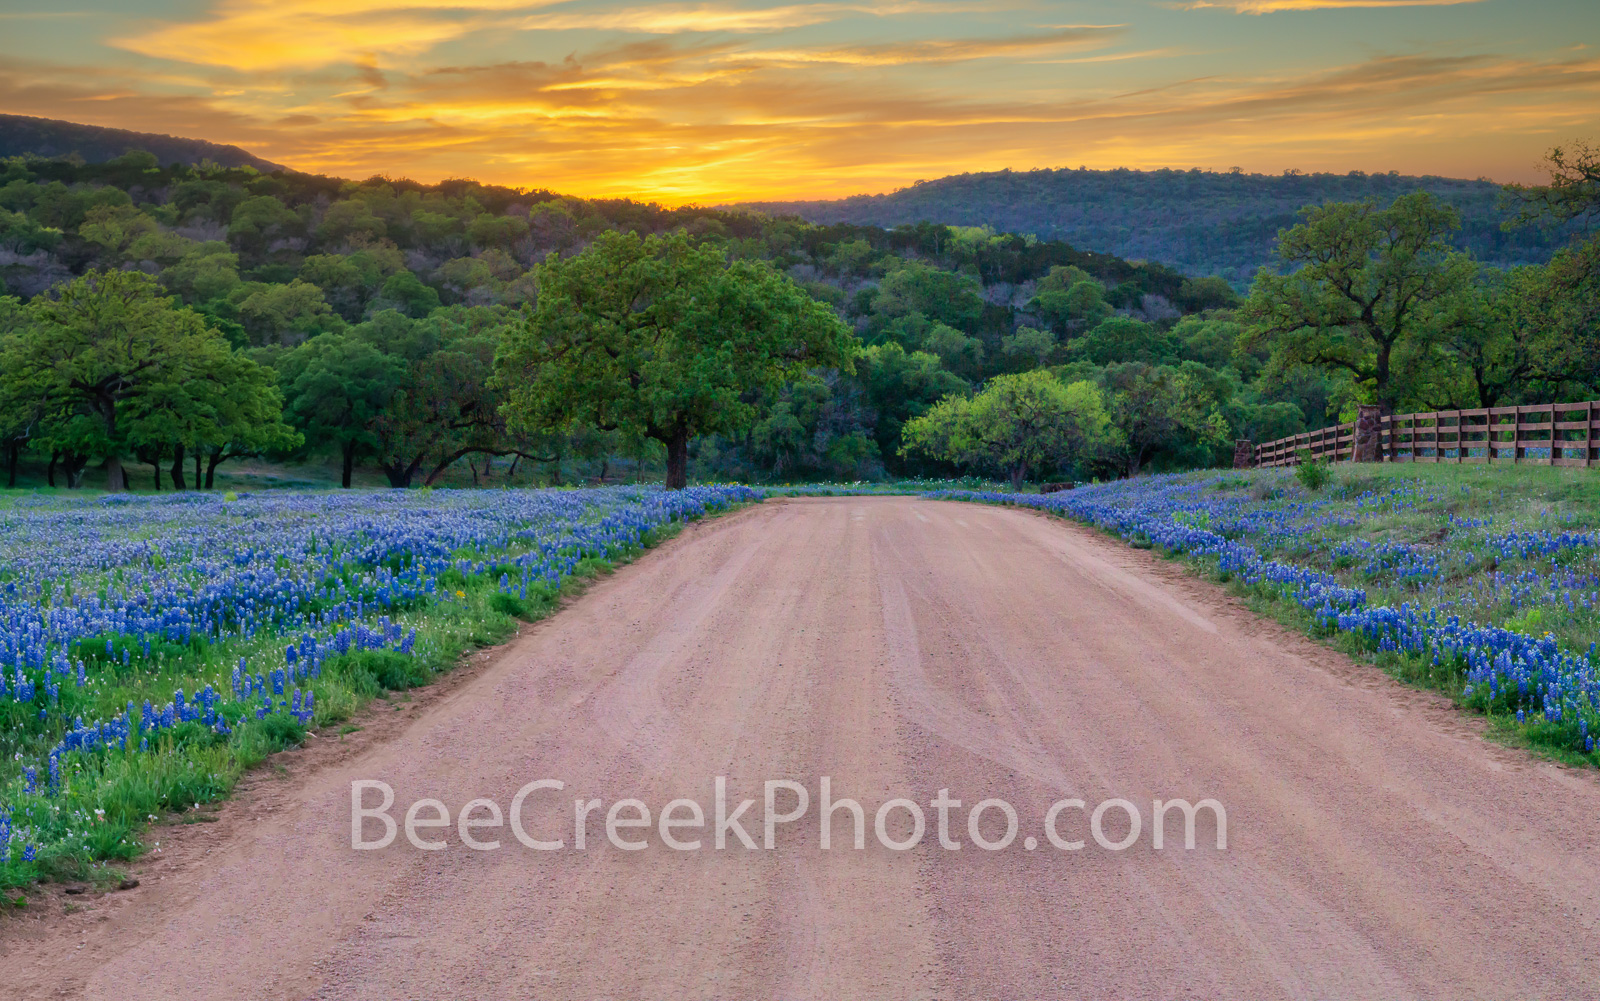 Road Less Traveled Sunset - We love this county dirt road in the Texas Hill country in spring with the bluebonnets lining the...